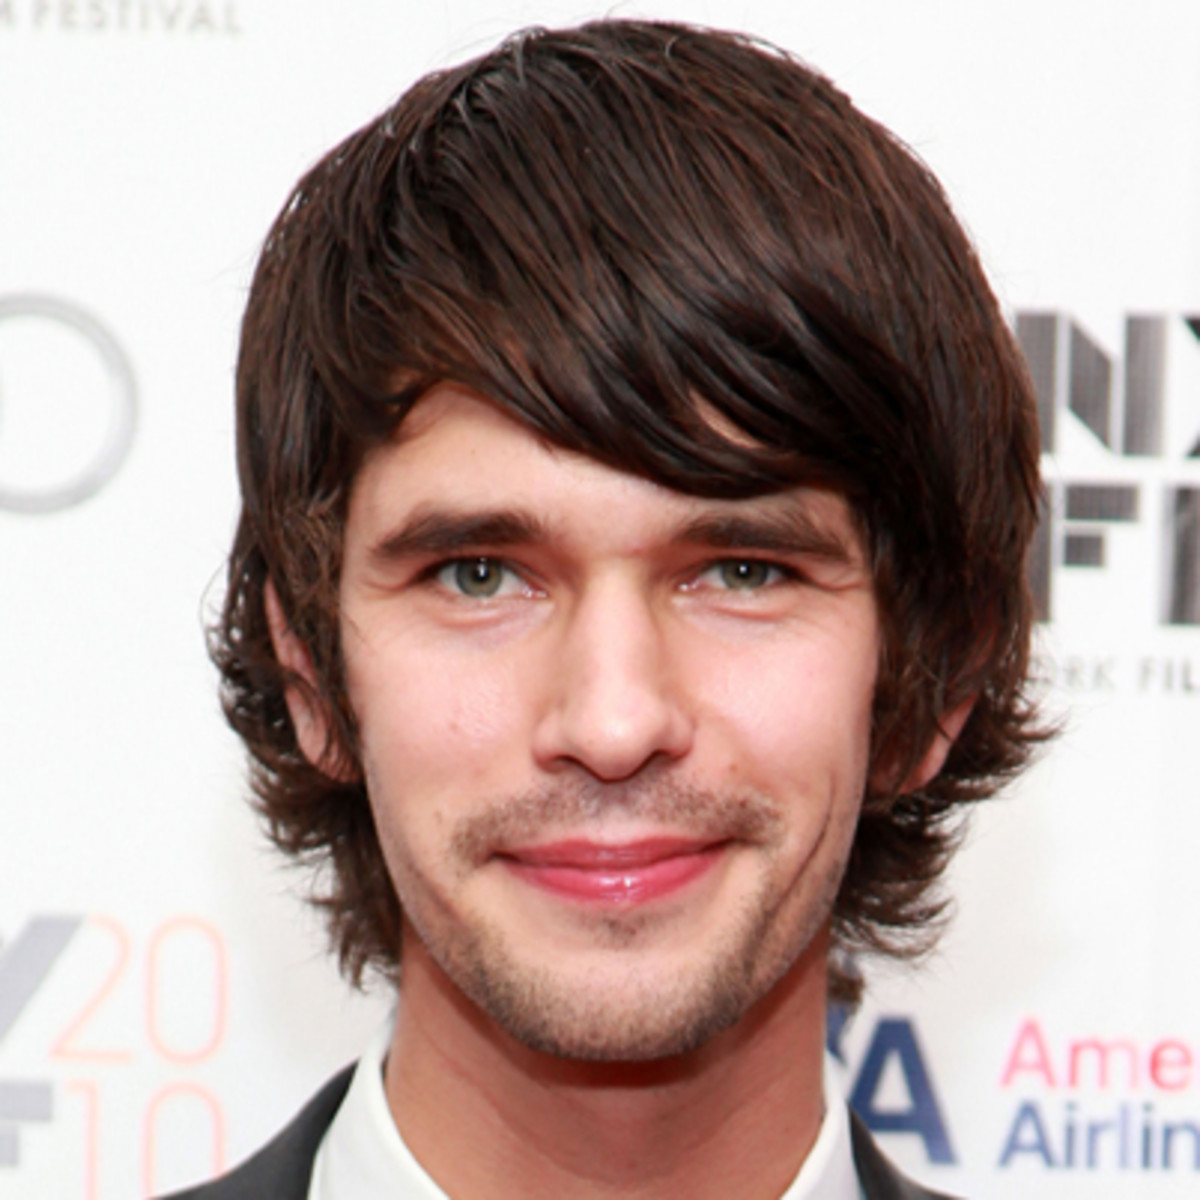 Ben Whishaw (born 1980)